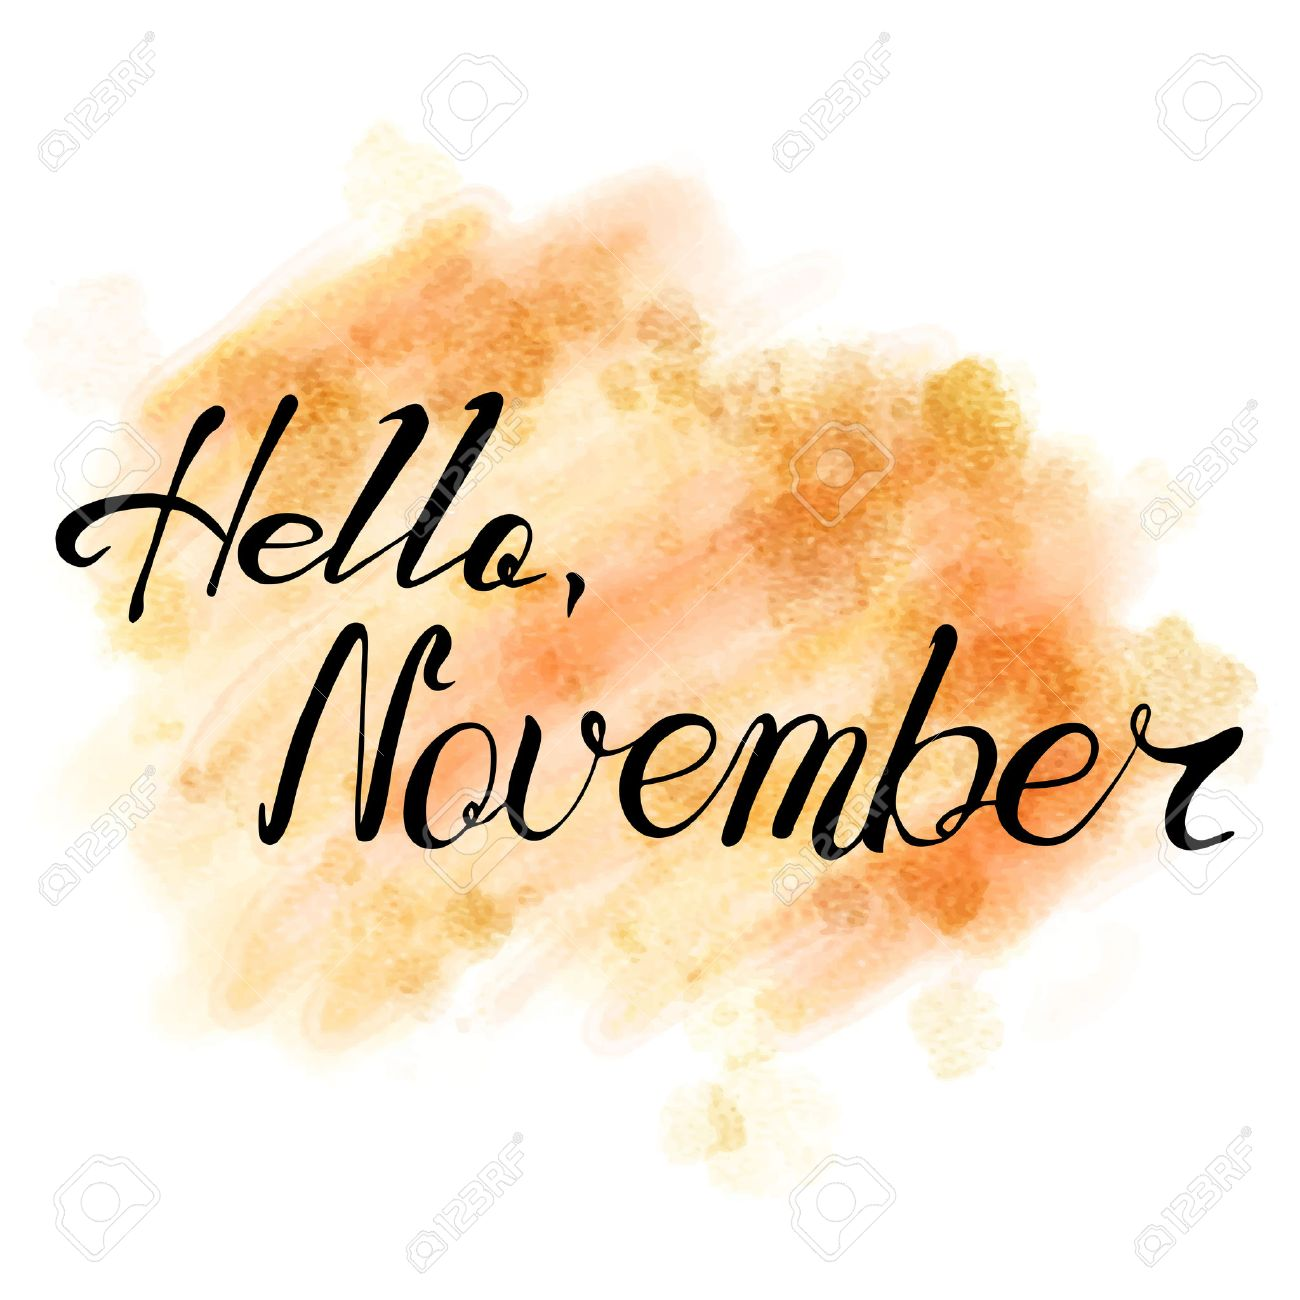 hello november hand drawn lettering on watercolor background